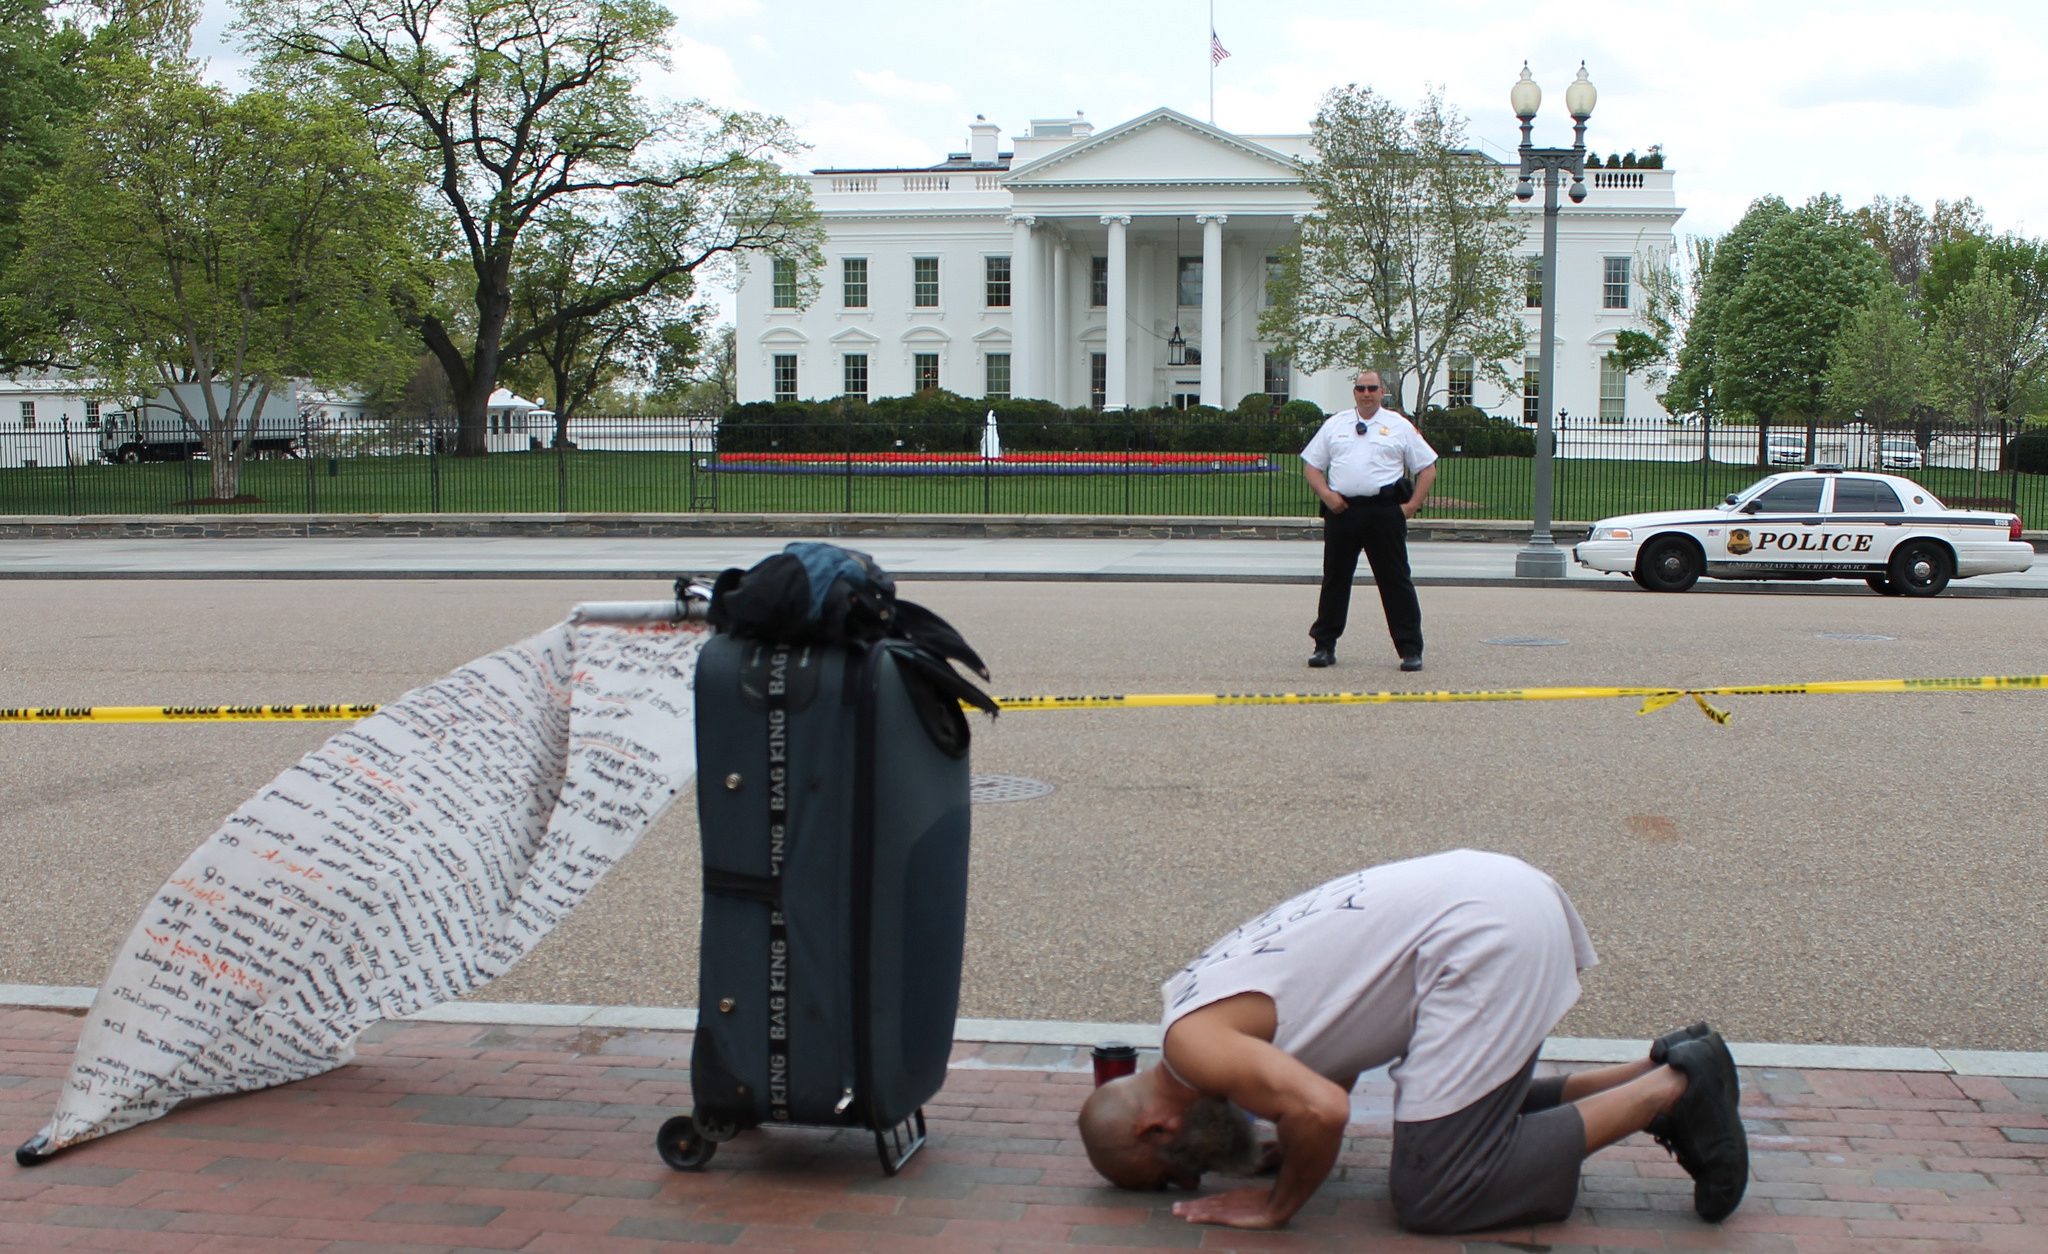 A Muslim man praying in front of the White House in Washington DC. Photo taken in April 2013 by Flickr user Elvert Barnes.